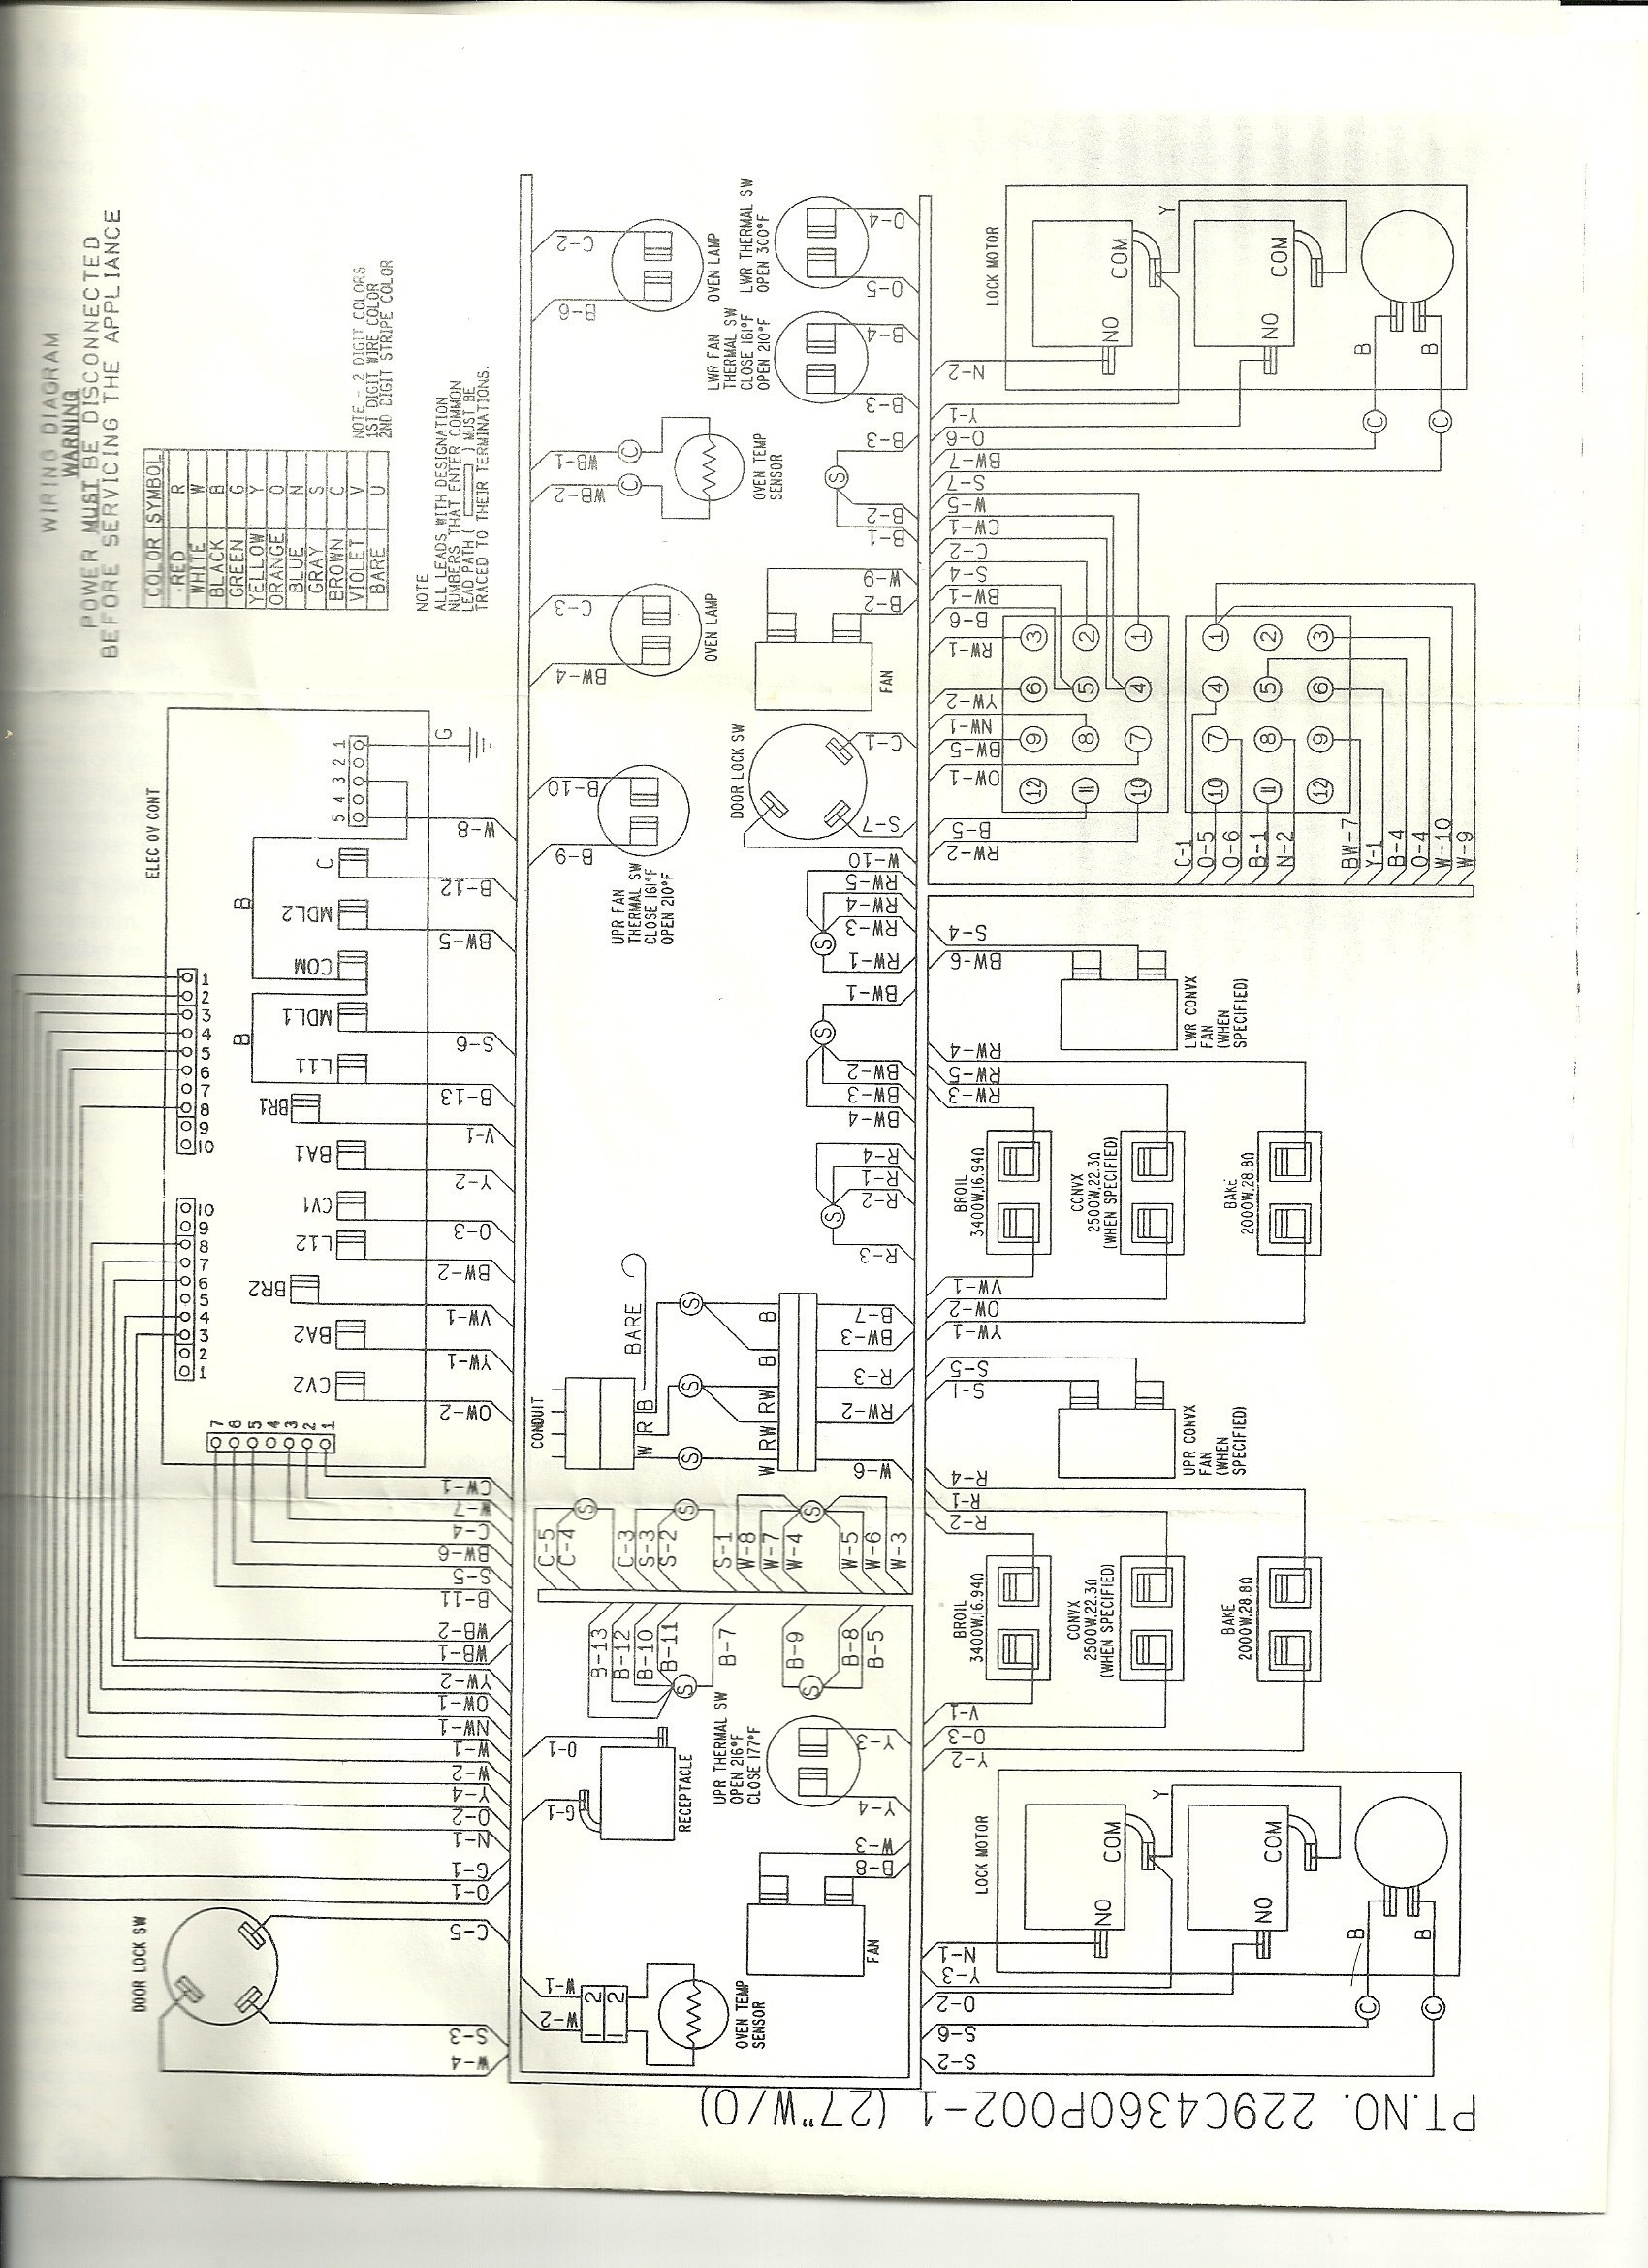 hight resolution of ge washer wiring diagram wiring diagram for a ge dryer new ge profile dryer electrical